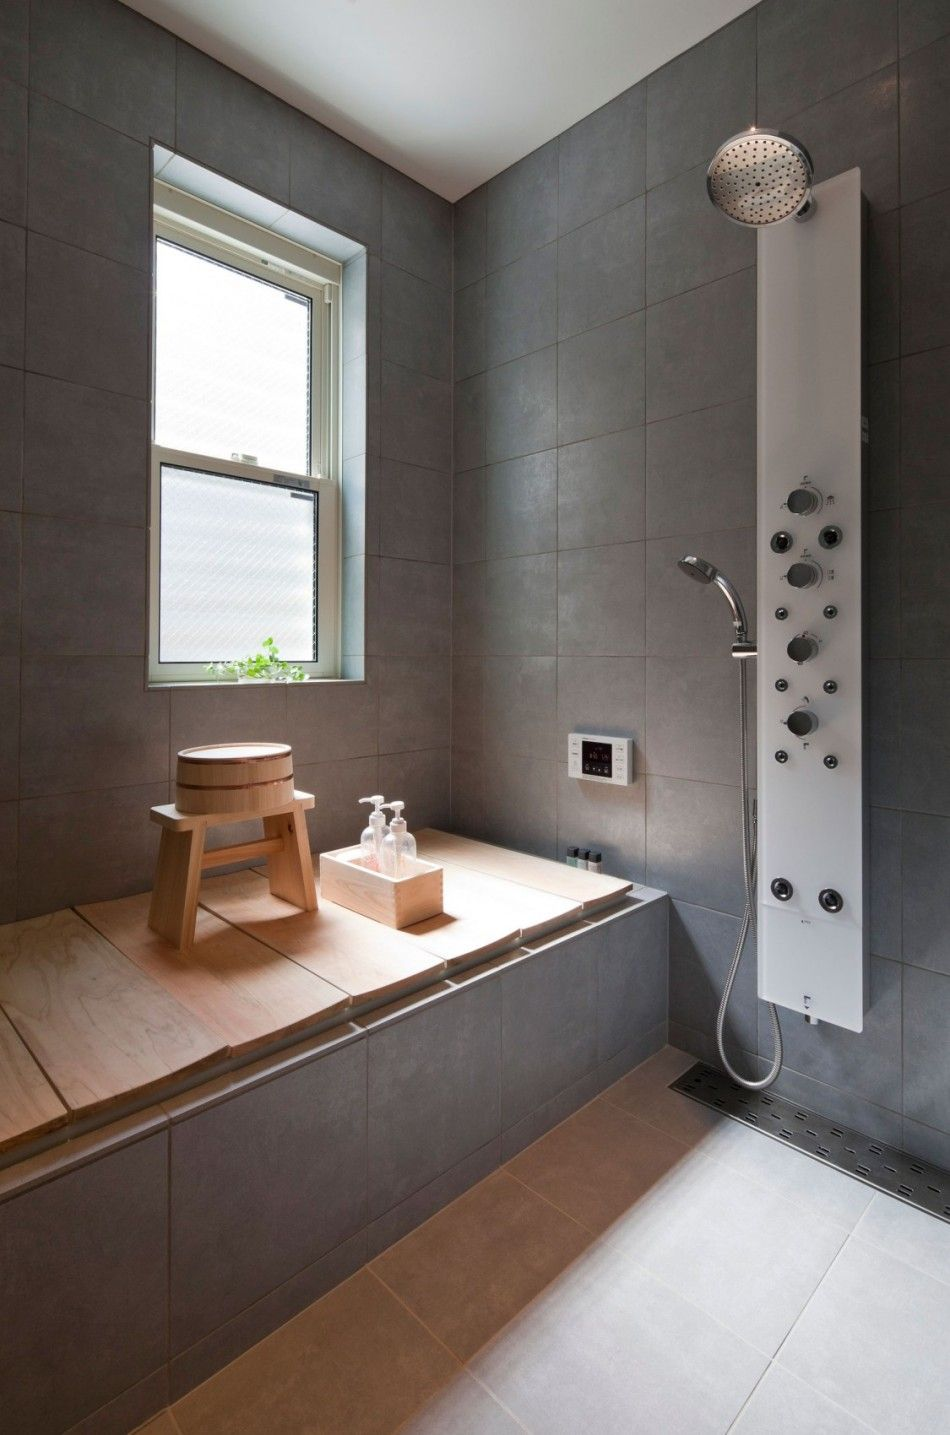 Compact Zen Home Full Of Hidden Meanings Japanese Style Bathroom